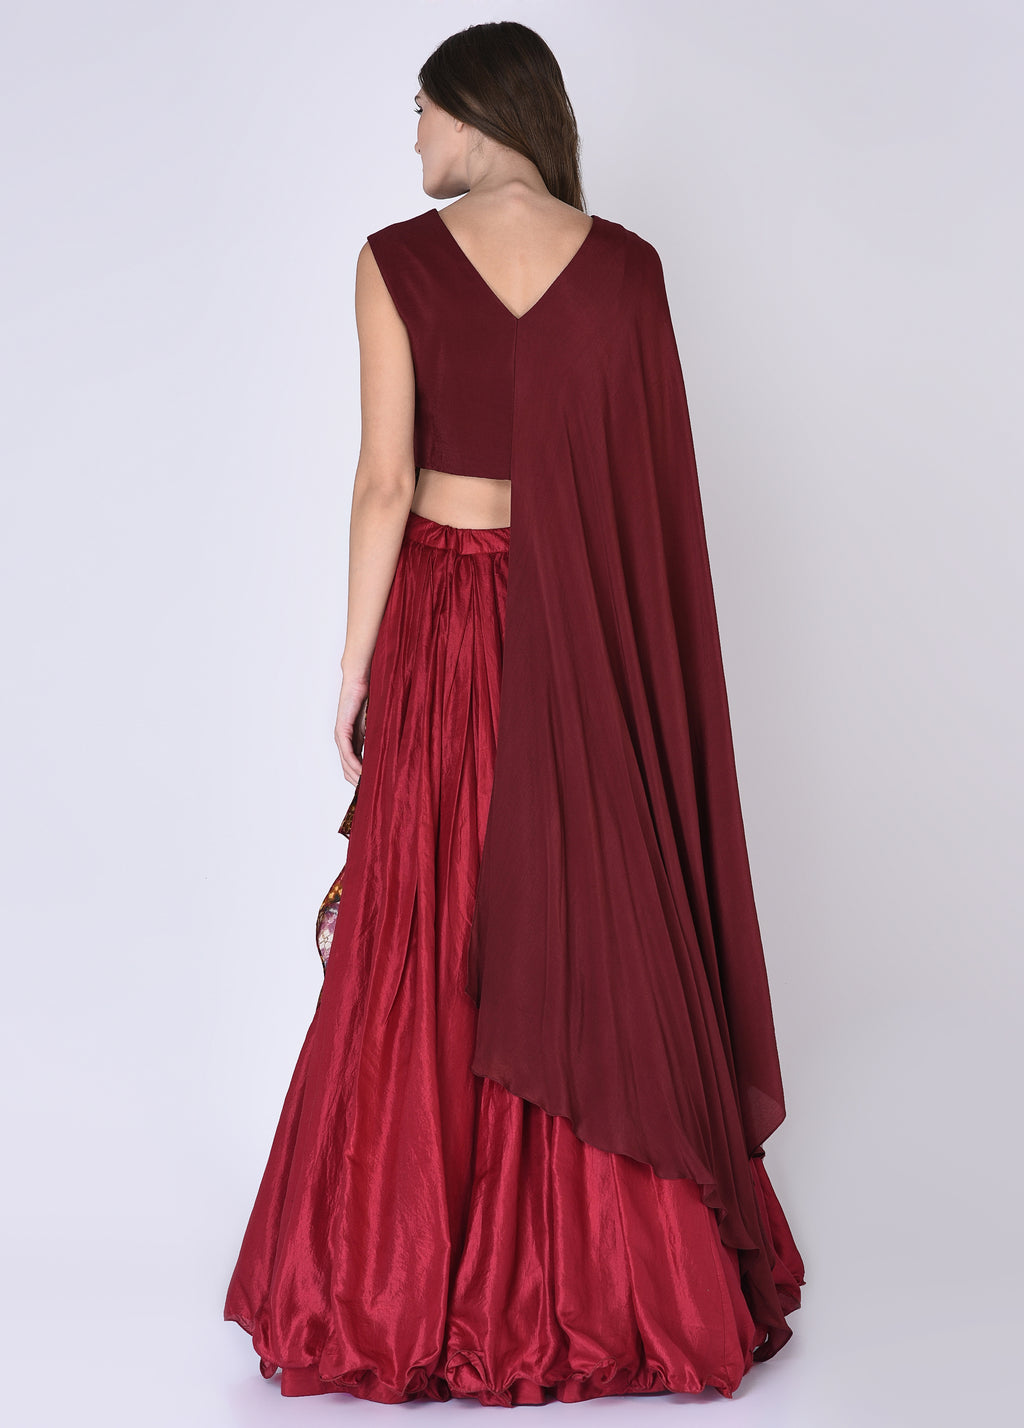 Red & Maroon Blouse With Skirt